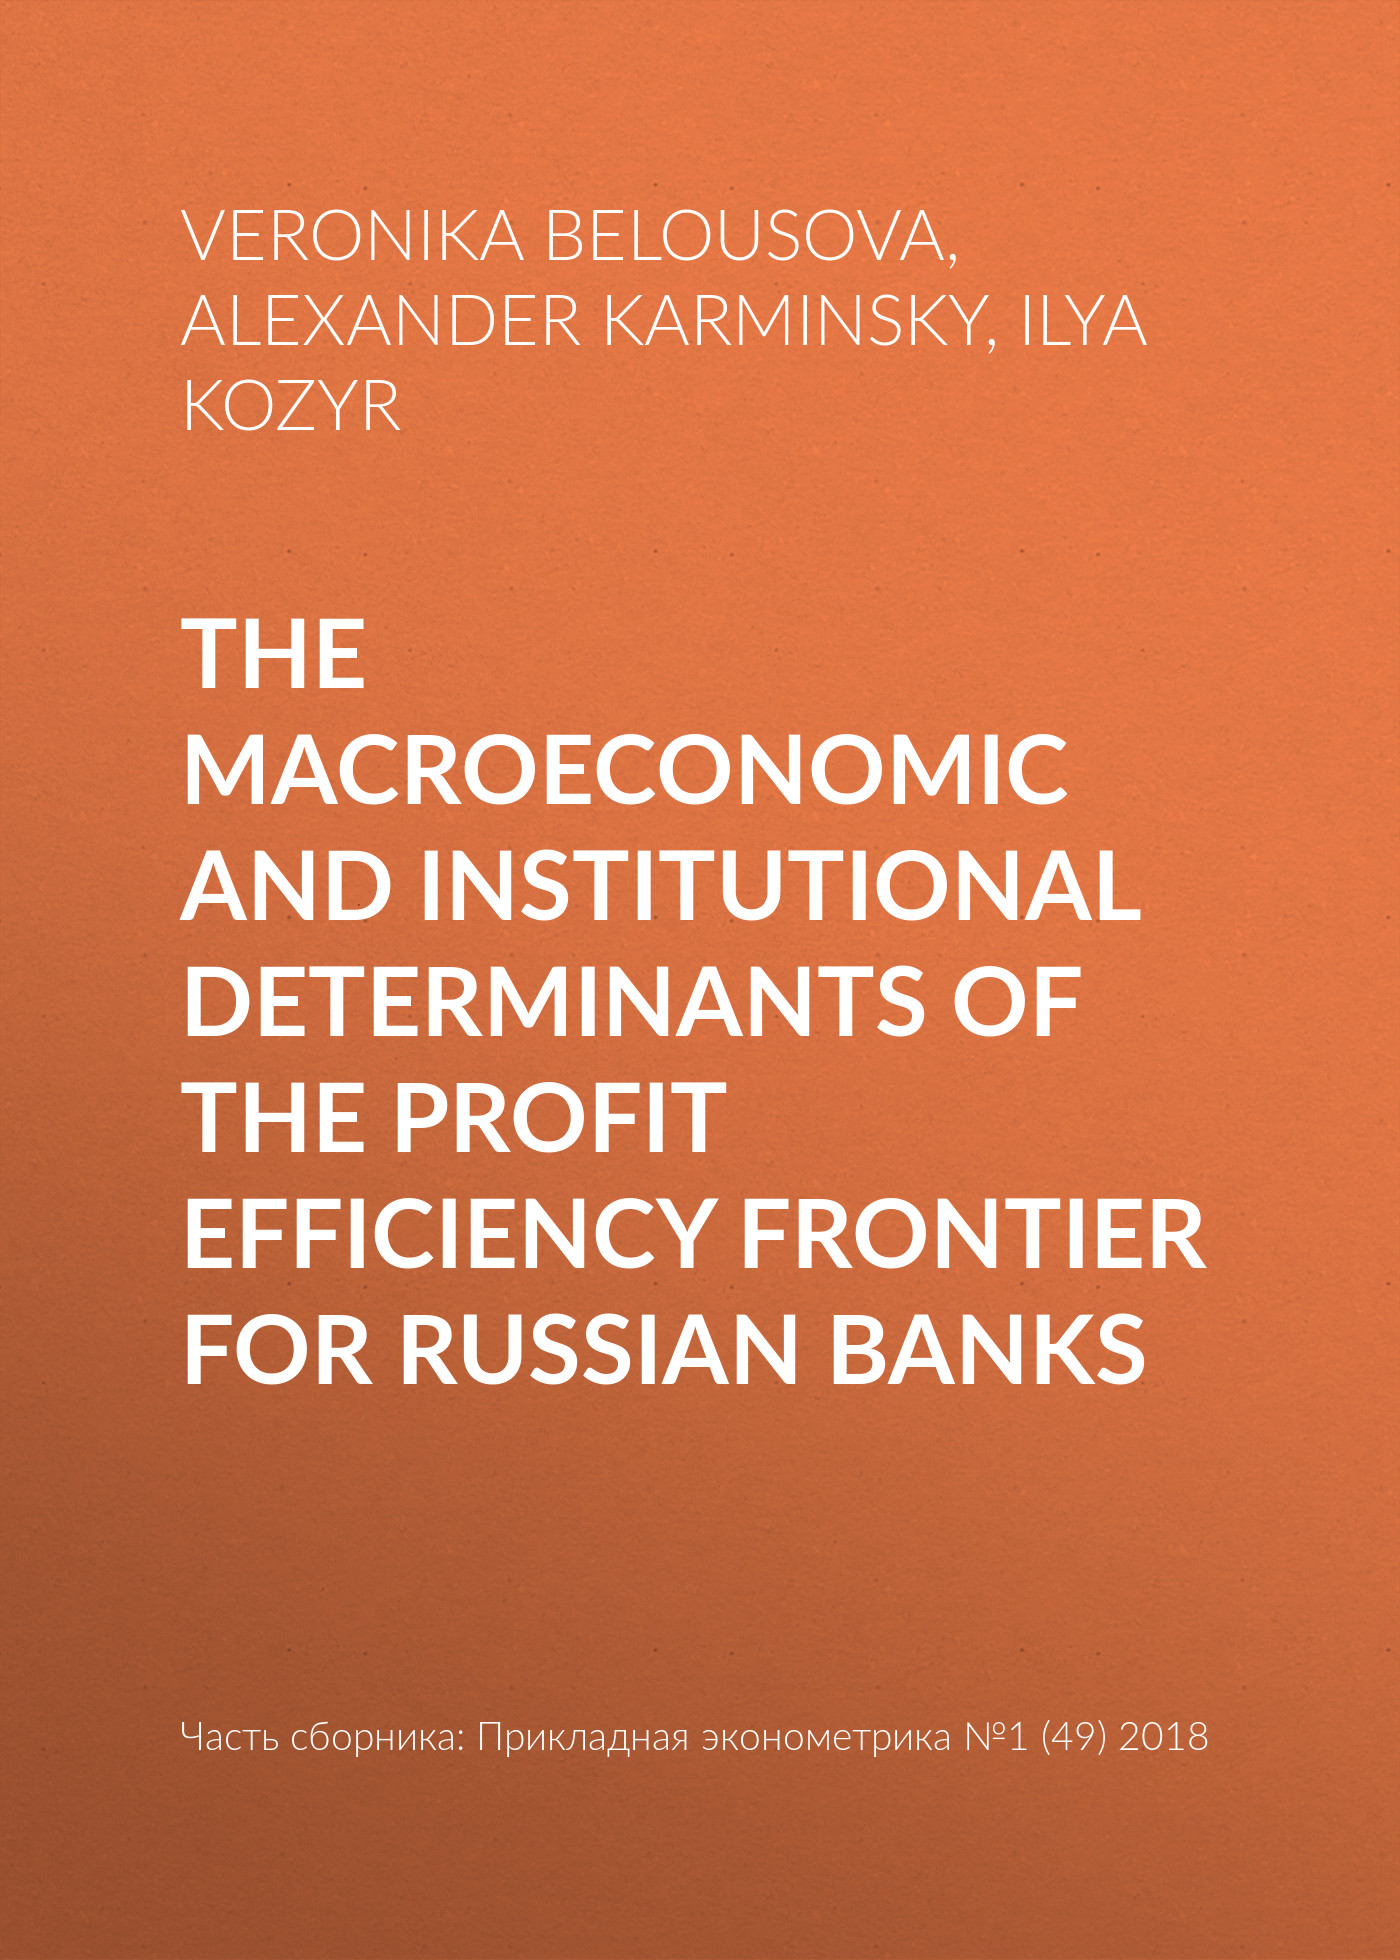 Veronika Belousova The macroeconomic and institutional determinants of the profit efficiency frontier for Russian banks